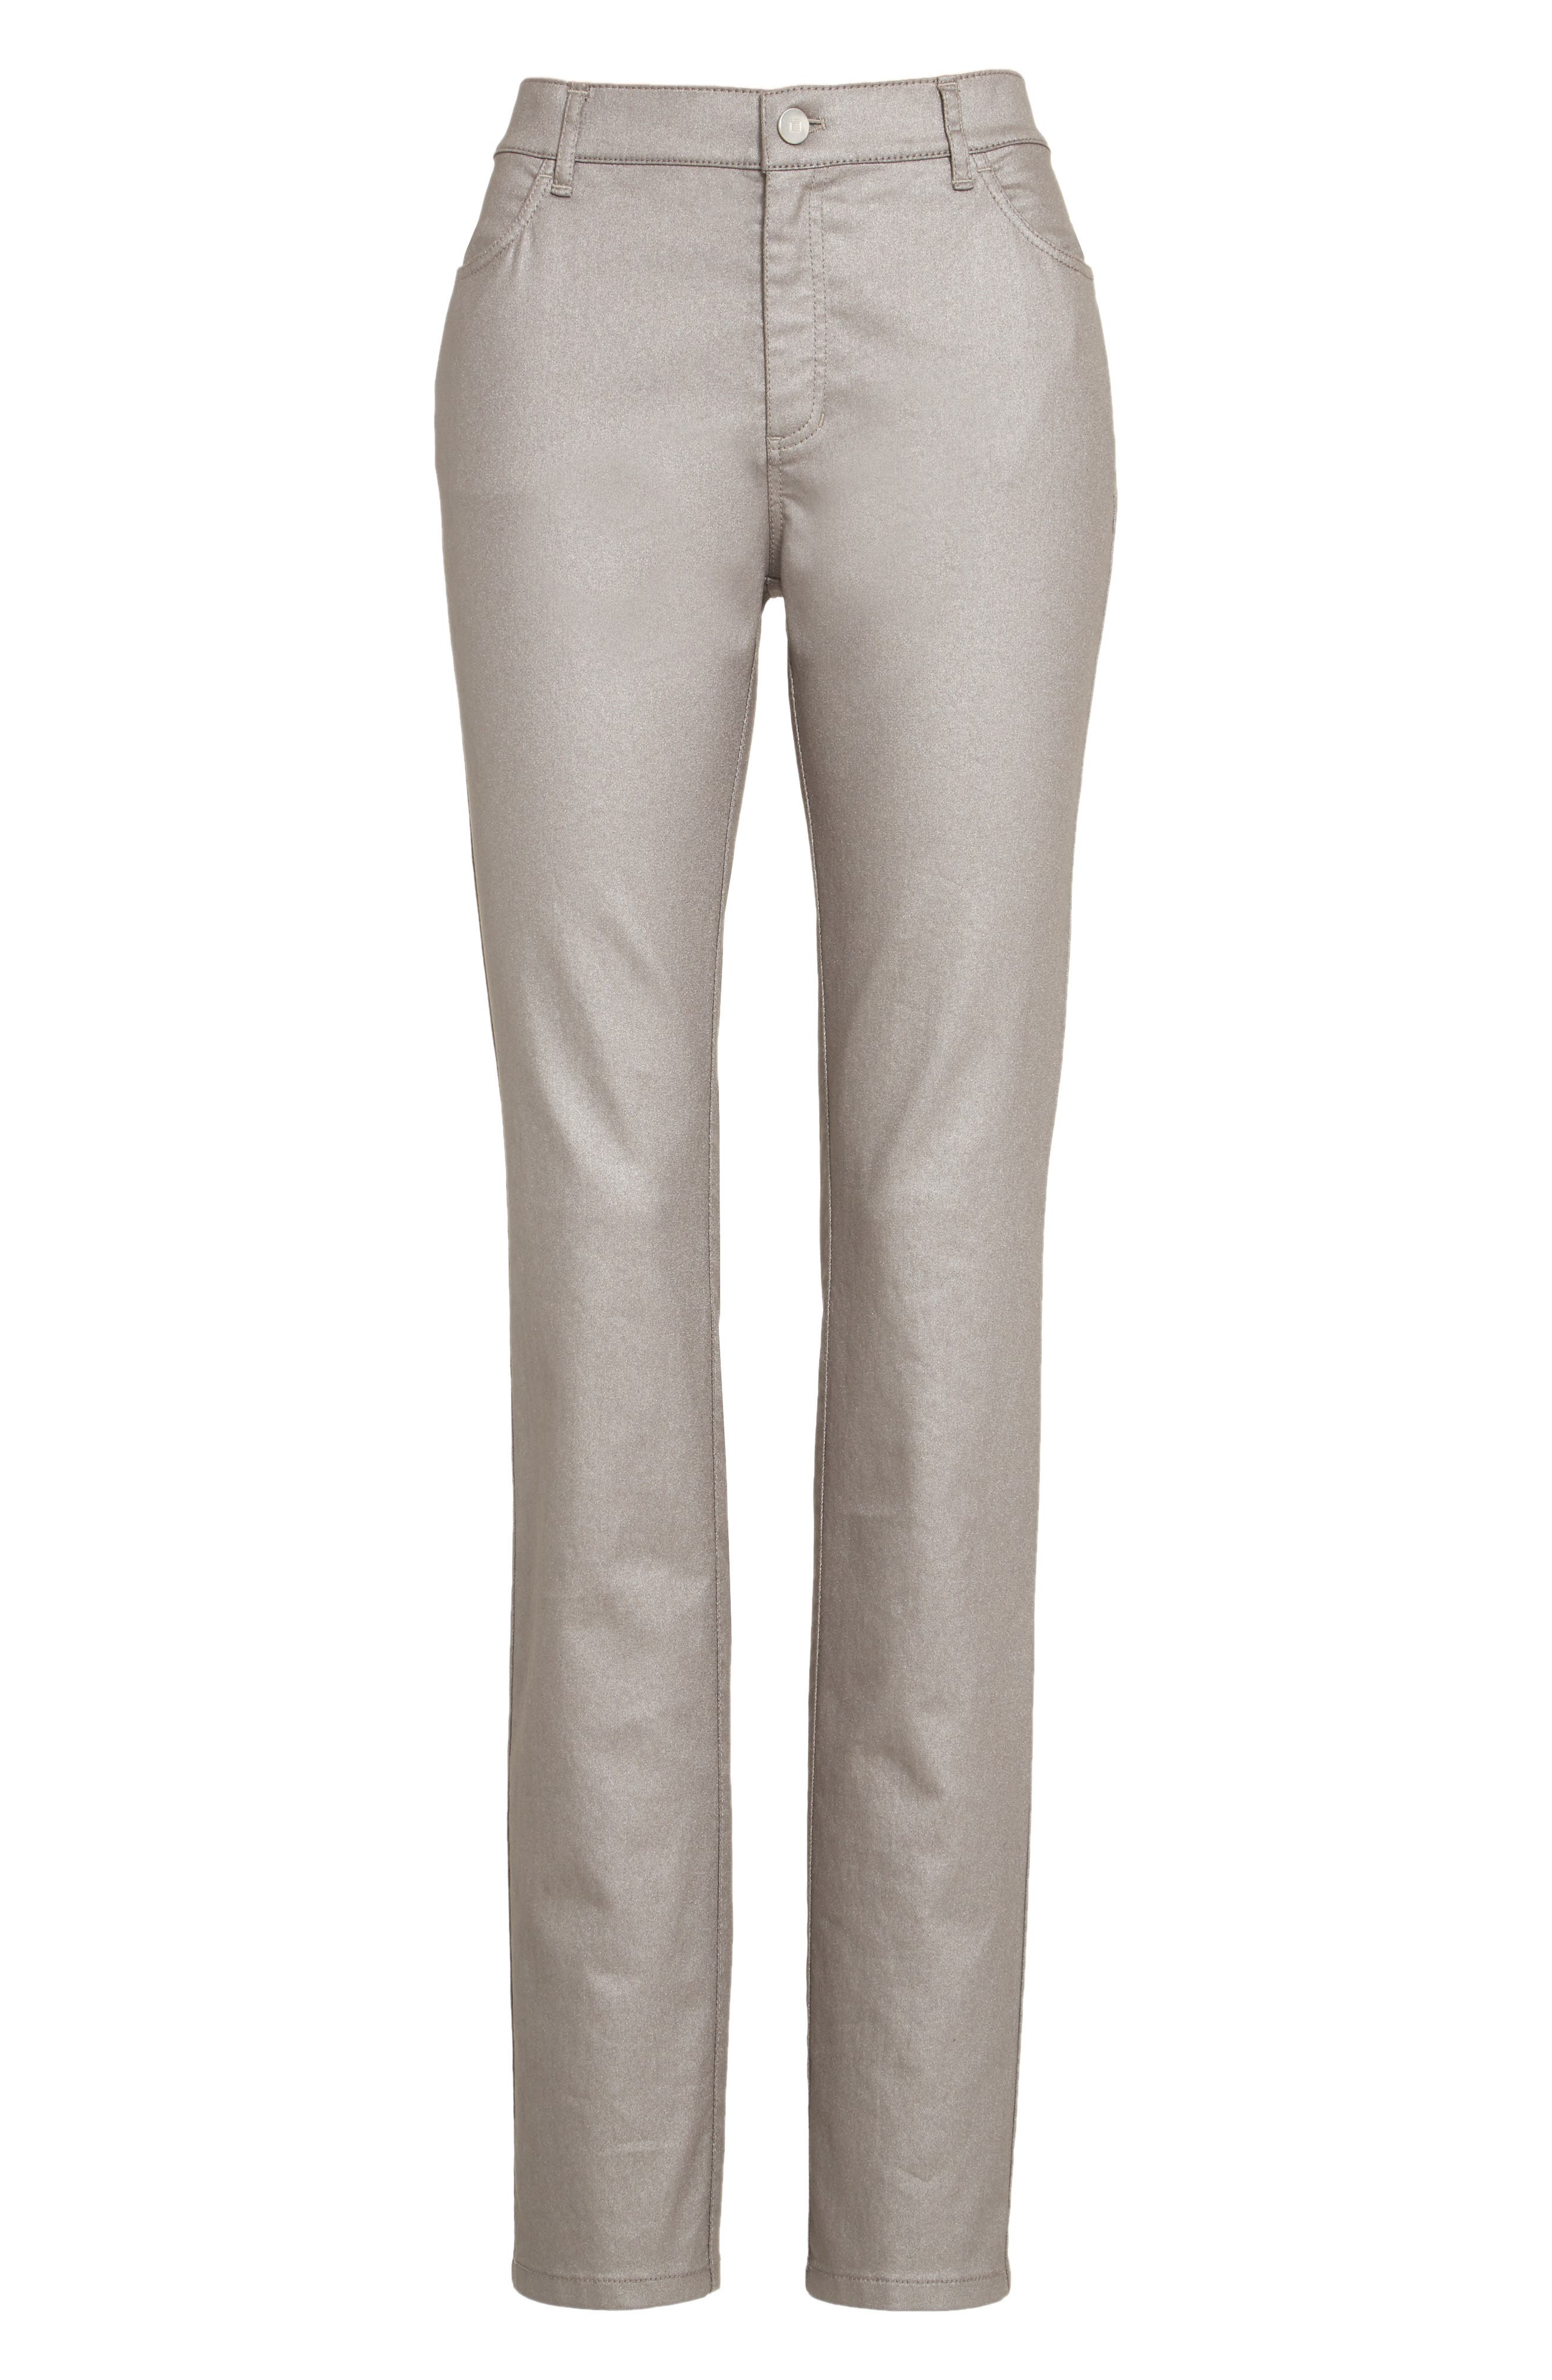 LAFAYETTE 148 NEW YORK, Curvy Fit Skinny Jeans, Alternate thumbnail 6, color, SILVER